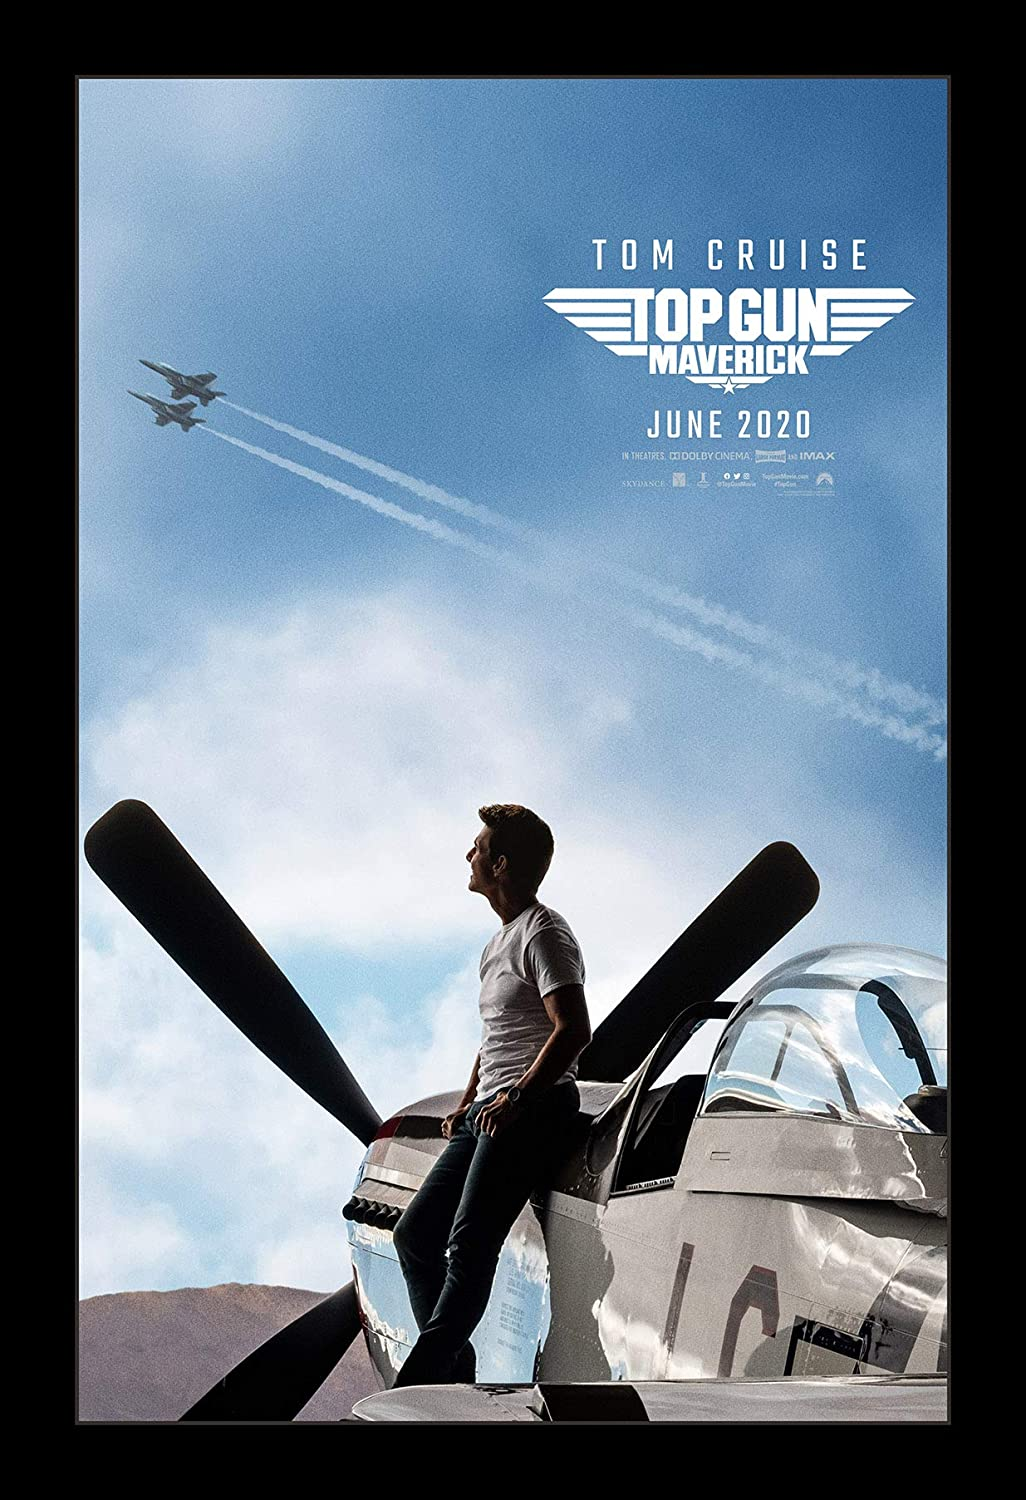 Download Filme Top Gun Maverick Torrent 2021 Qualidade Hd